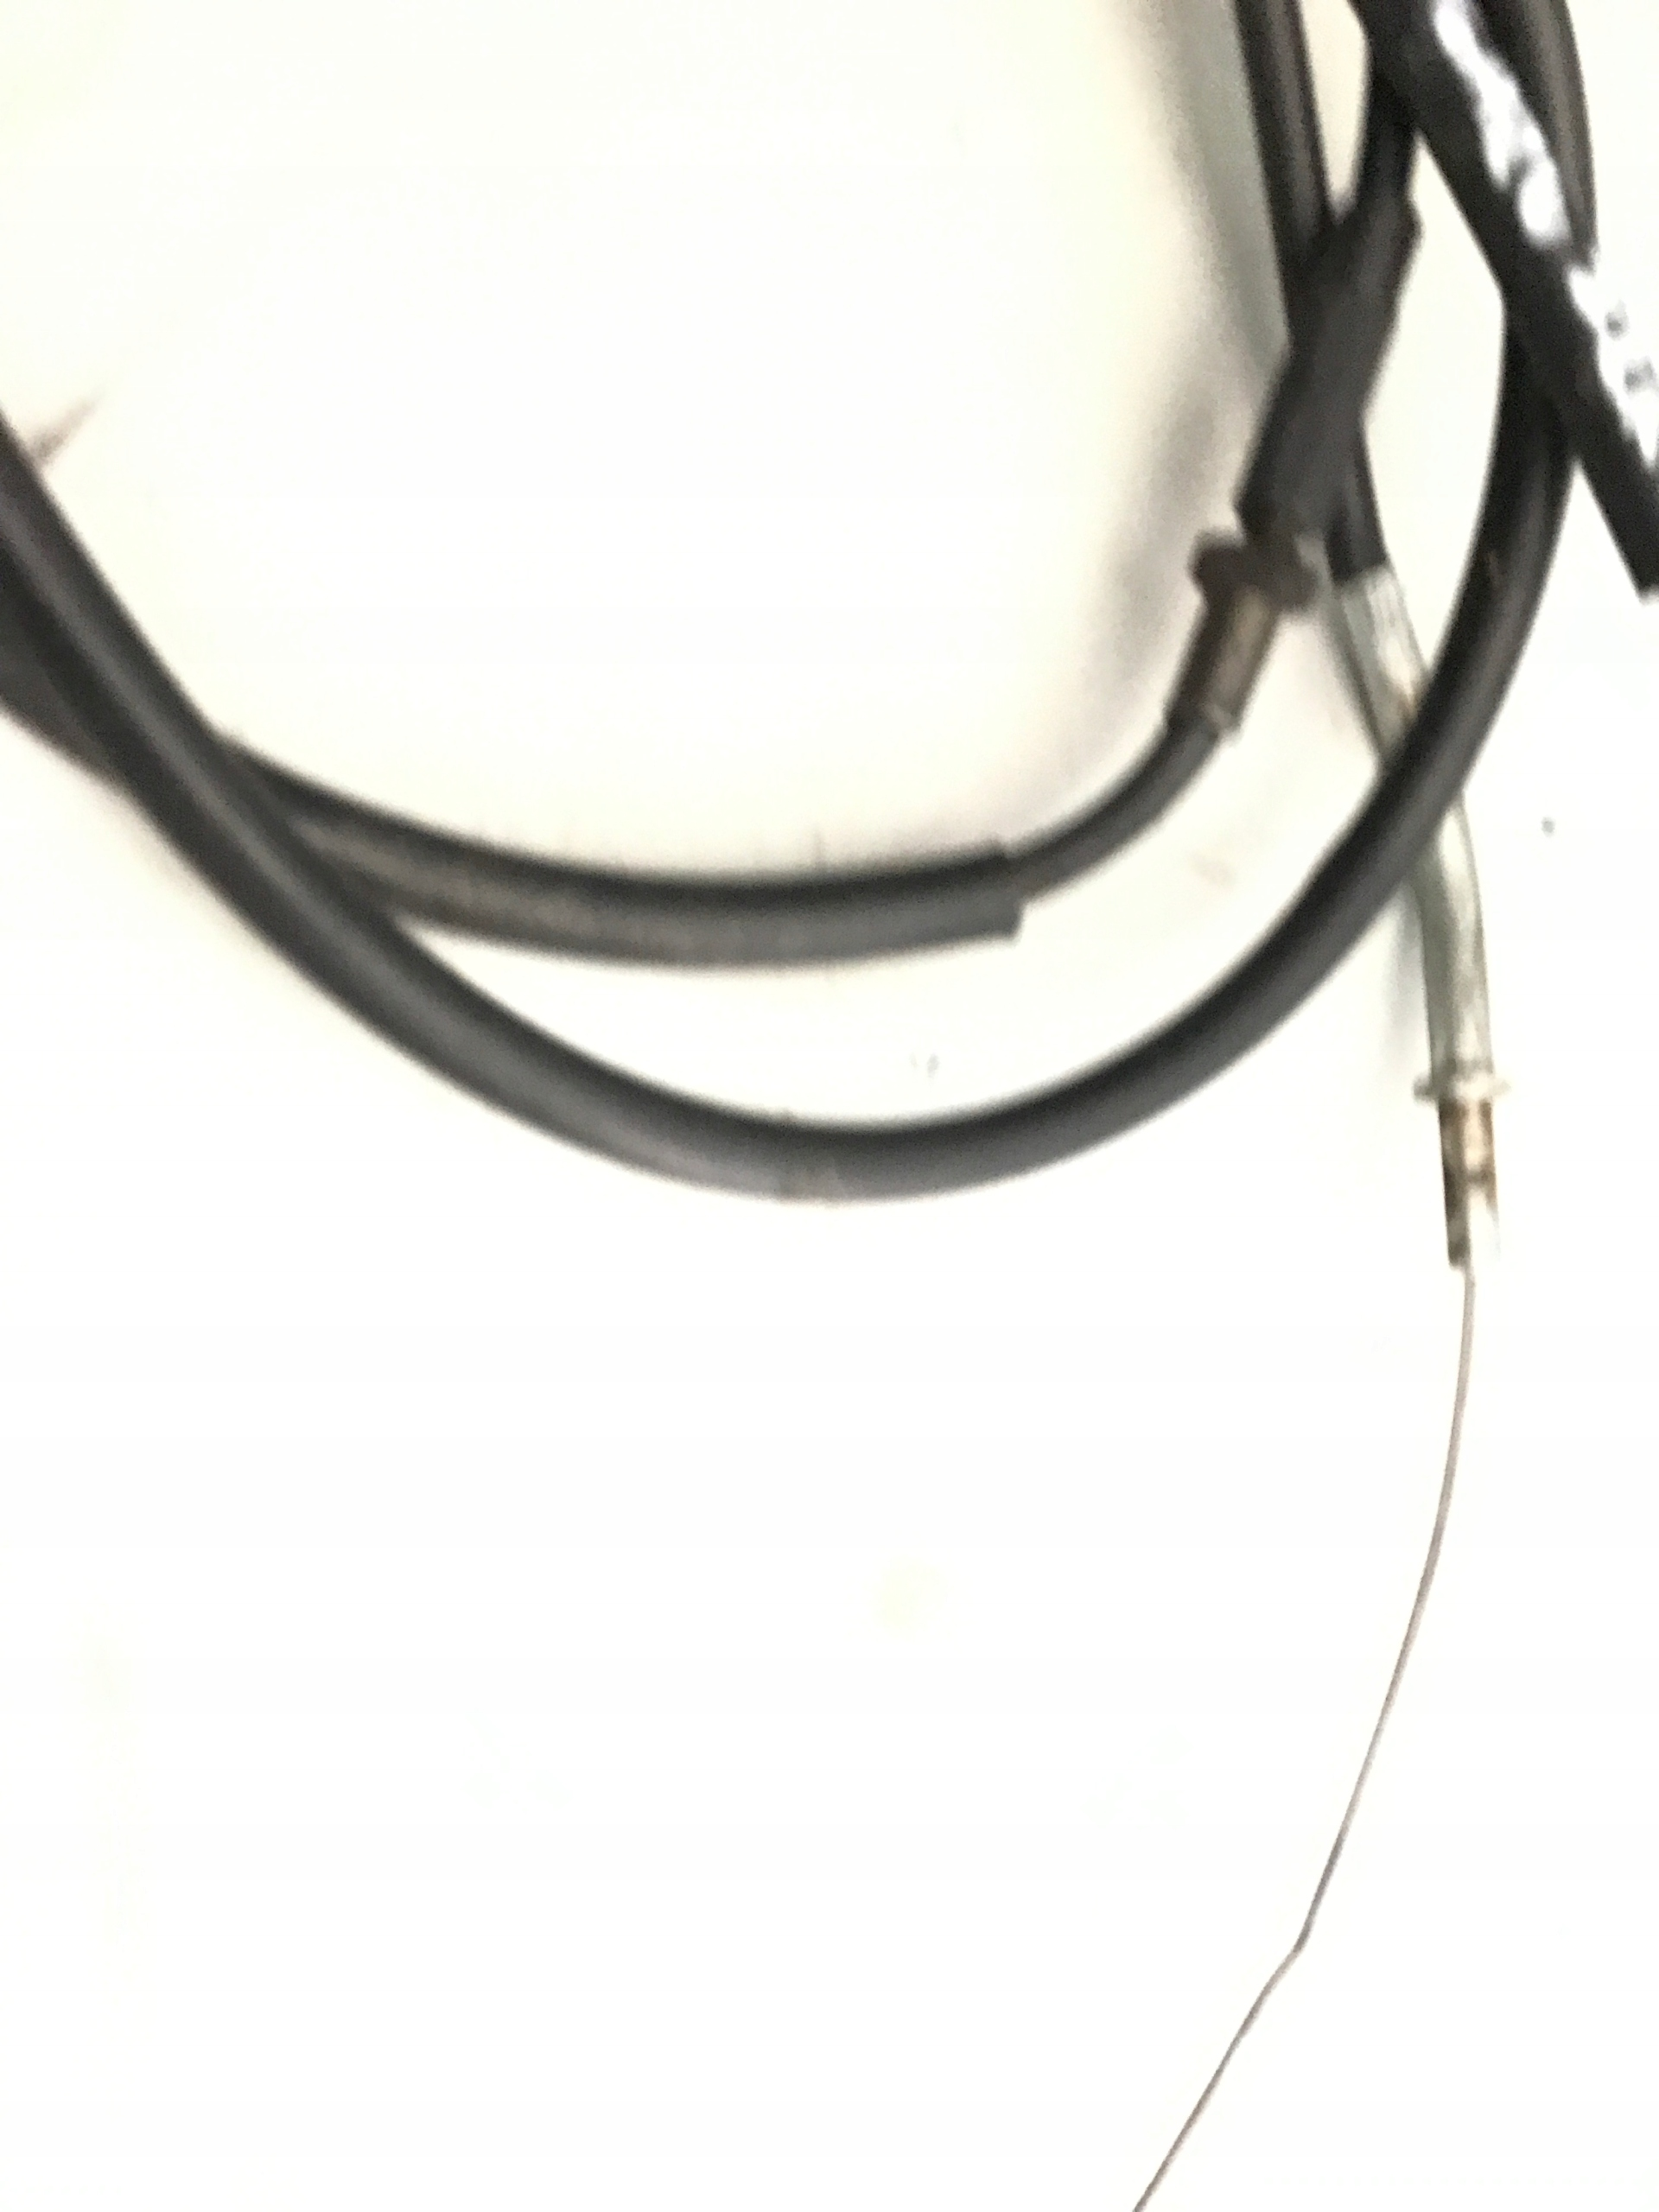 Picture of KAWASAKI ZZR 1200 THROTTLE CABLE CABLES SET 02-05